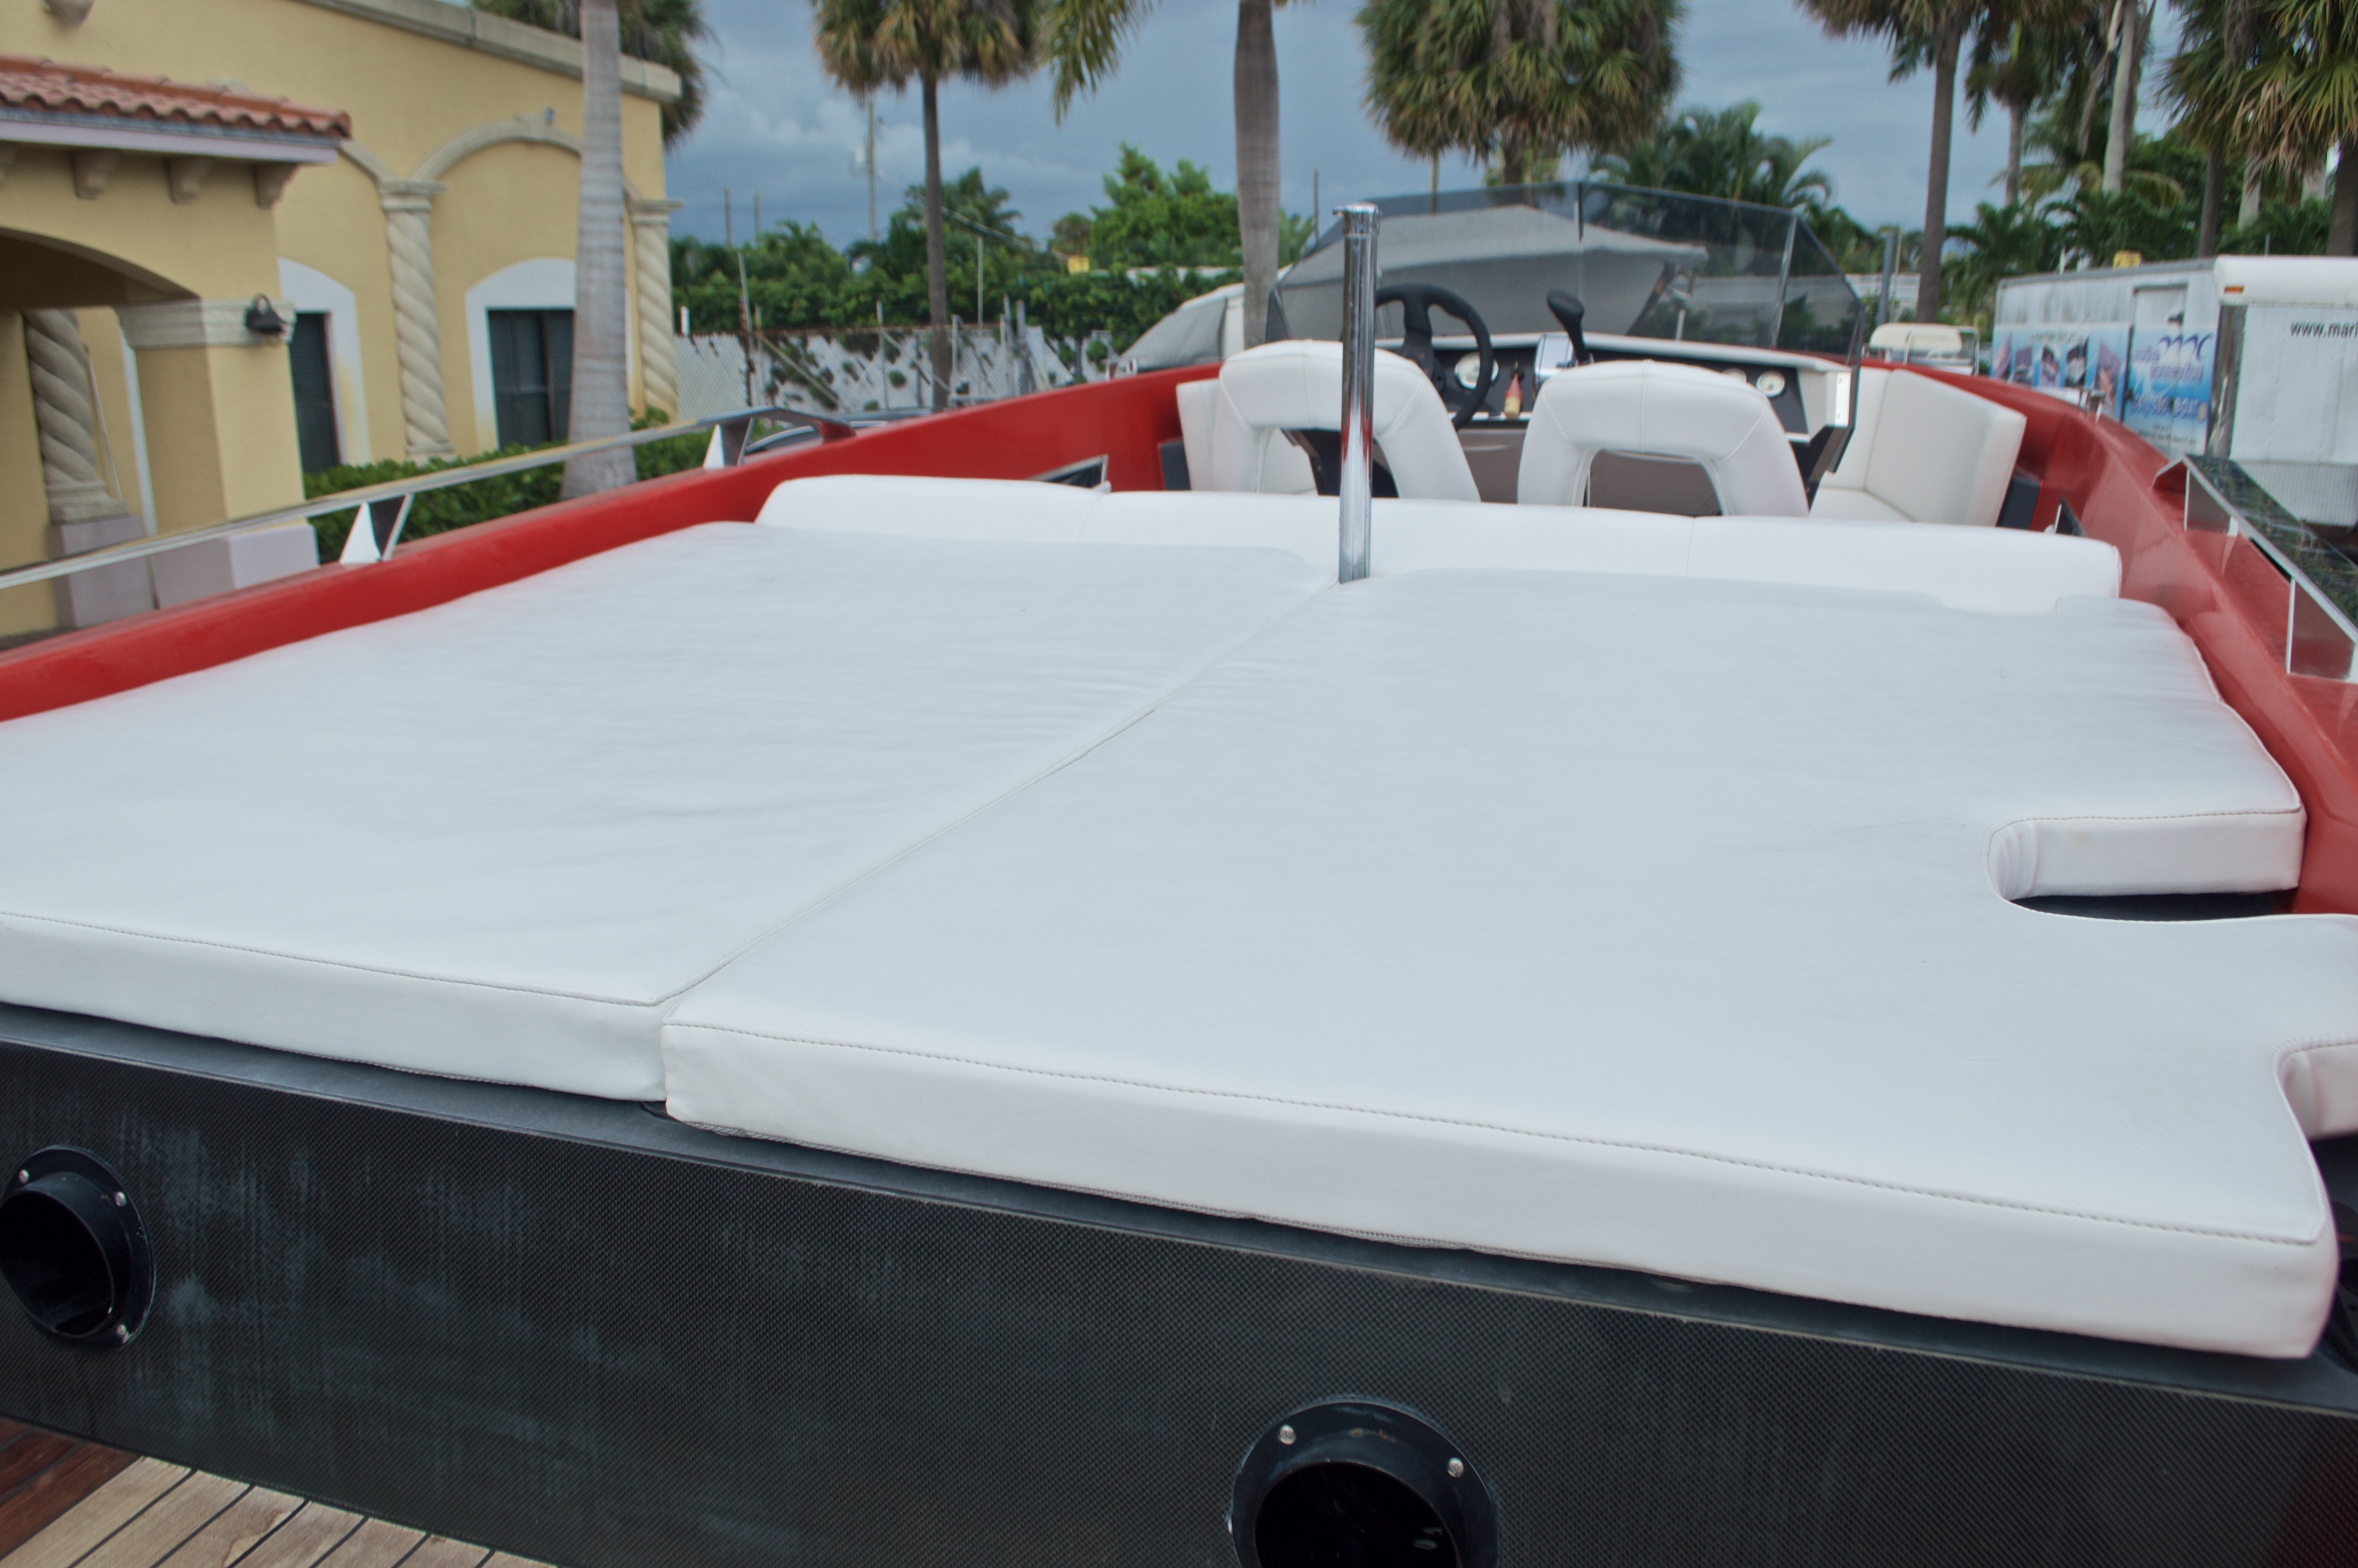 Thumbnail 8 for Used 2007 Frauscher 686 Lido boat for sale in West Palm Beach, FL